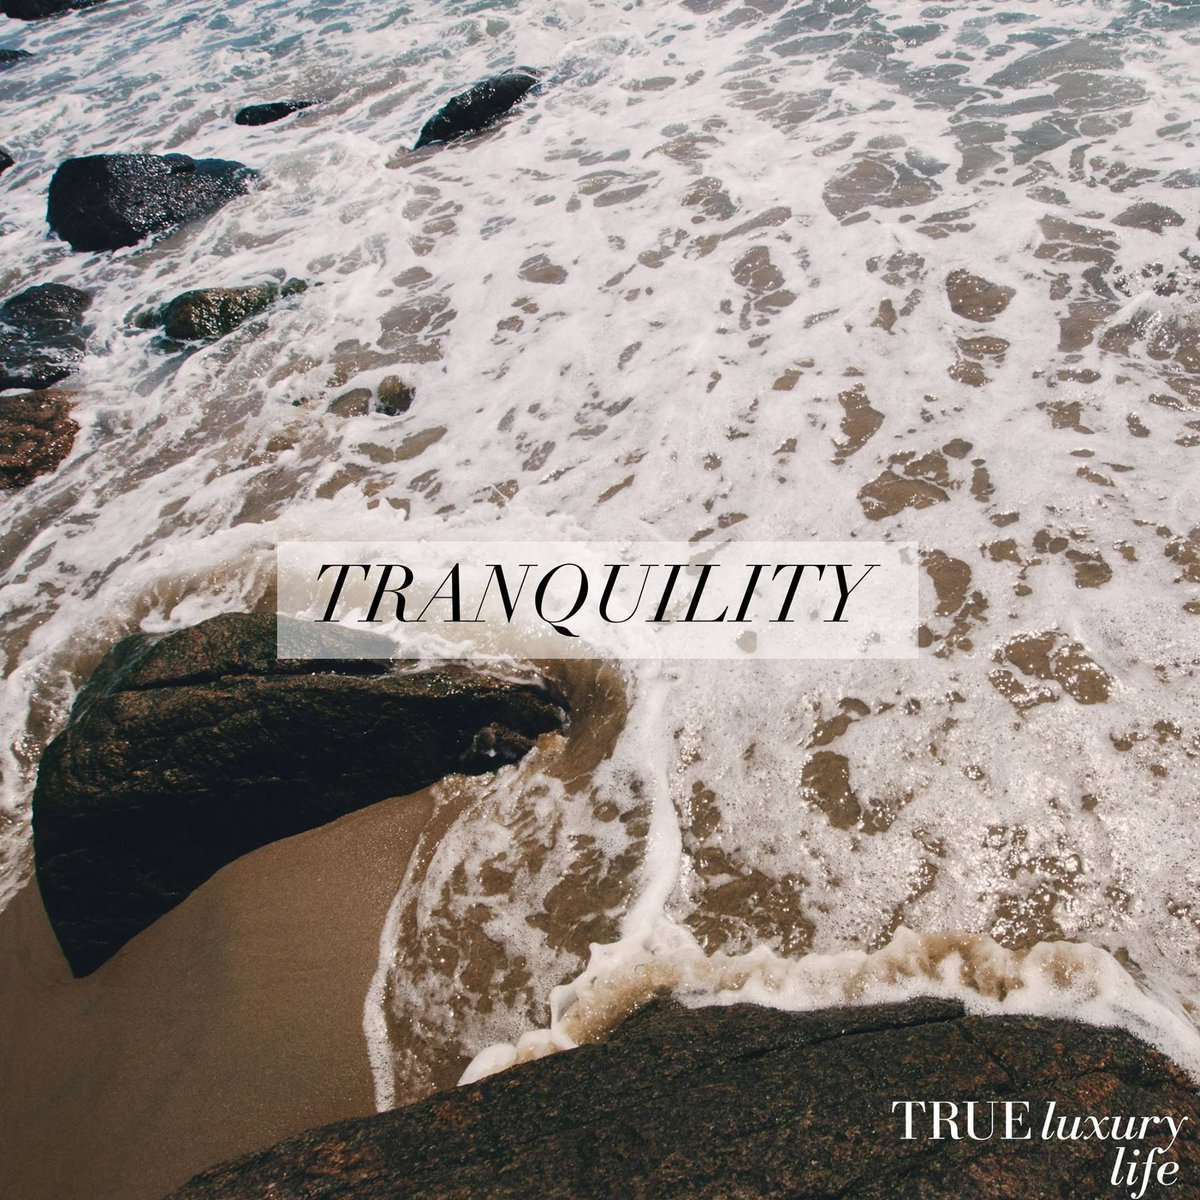 Tranquility can be found in mindfulness 🌗  #trueluxurylife #luxury #organic #wellness #health #lifestyle #healthylifestyle #selfcare #selflove #nature #luxlife #luxurylife #peace #meditation #yoga #inspiration #inspo #inspoquote #luxurylifestyle #mindfulness #healthyrecipes